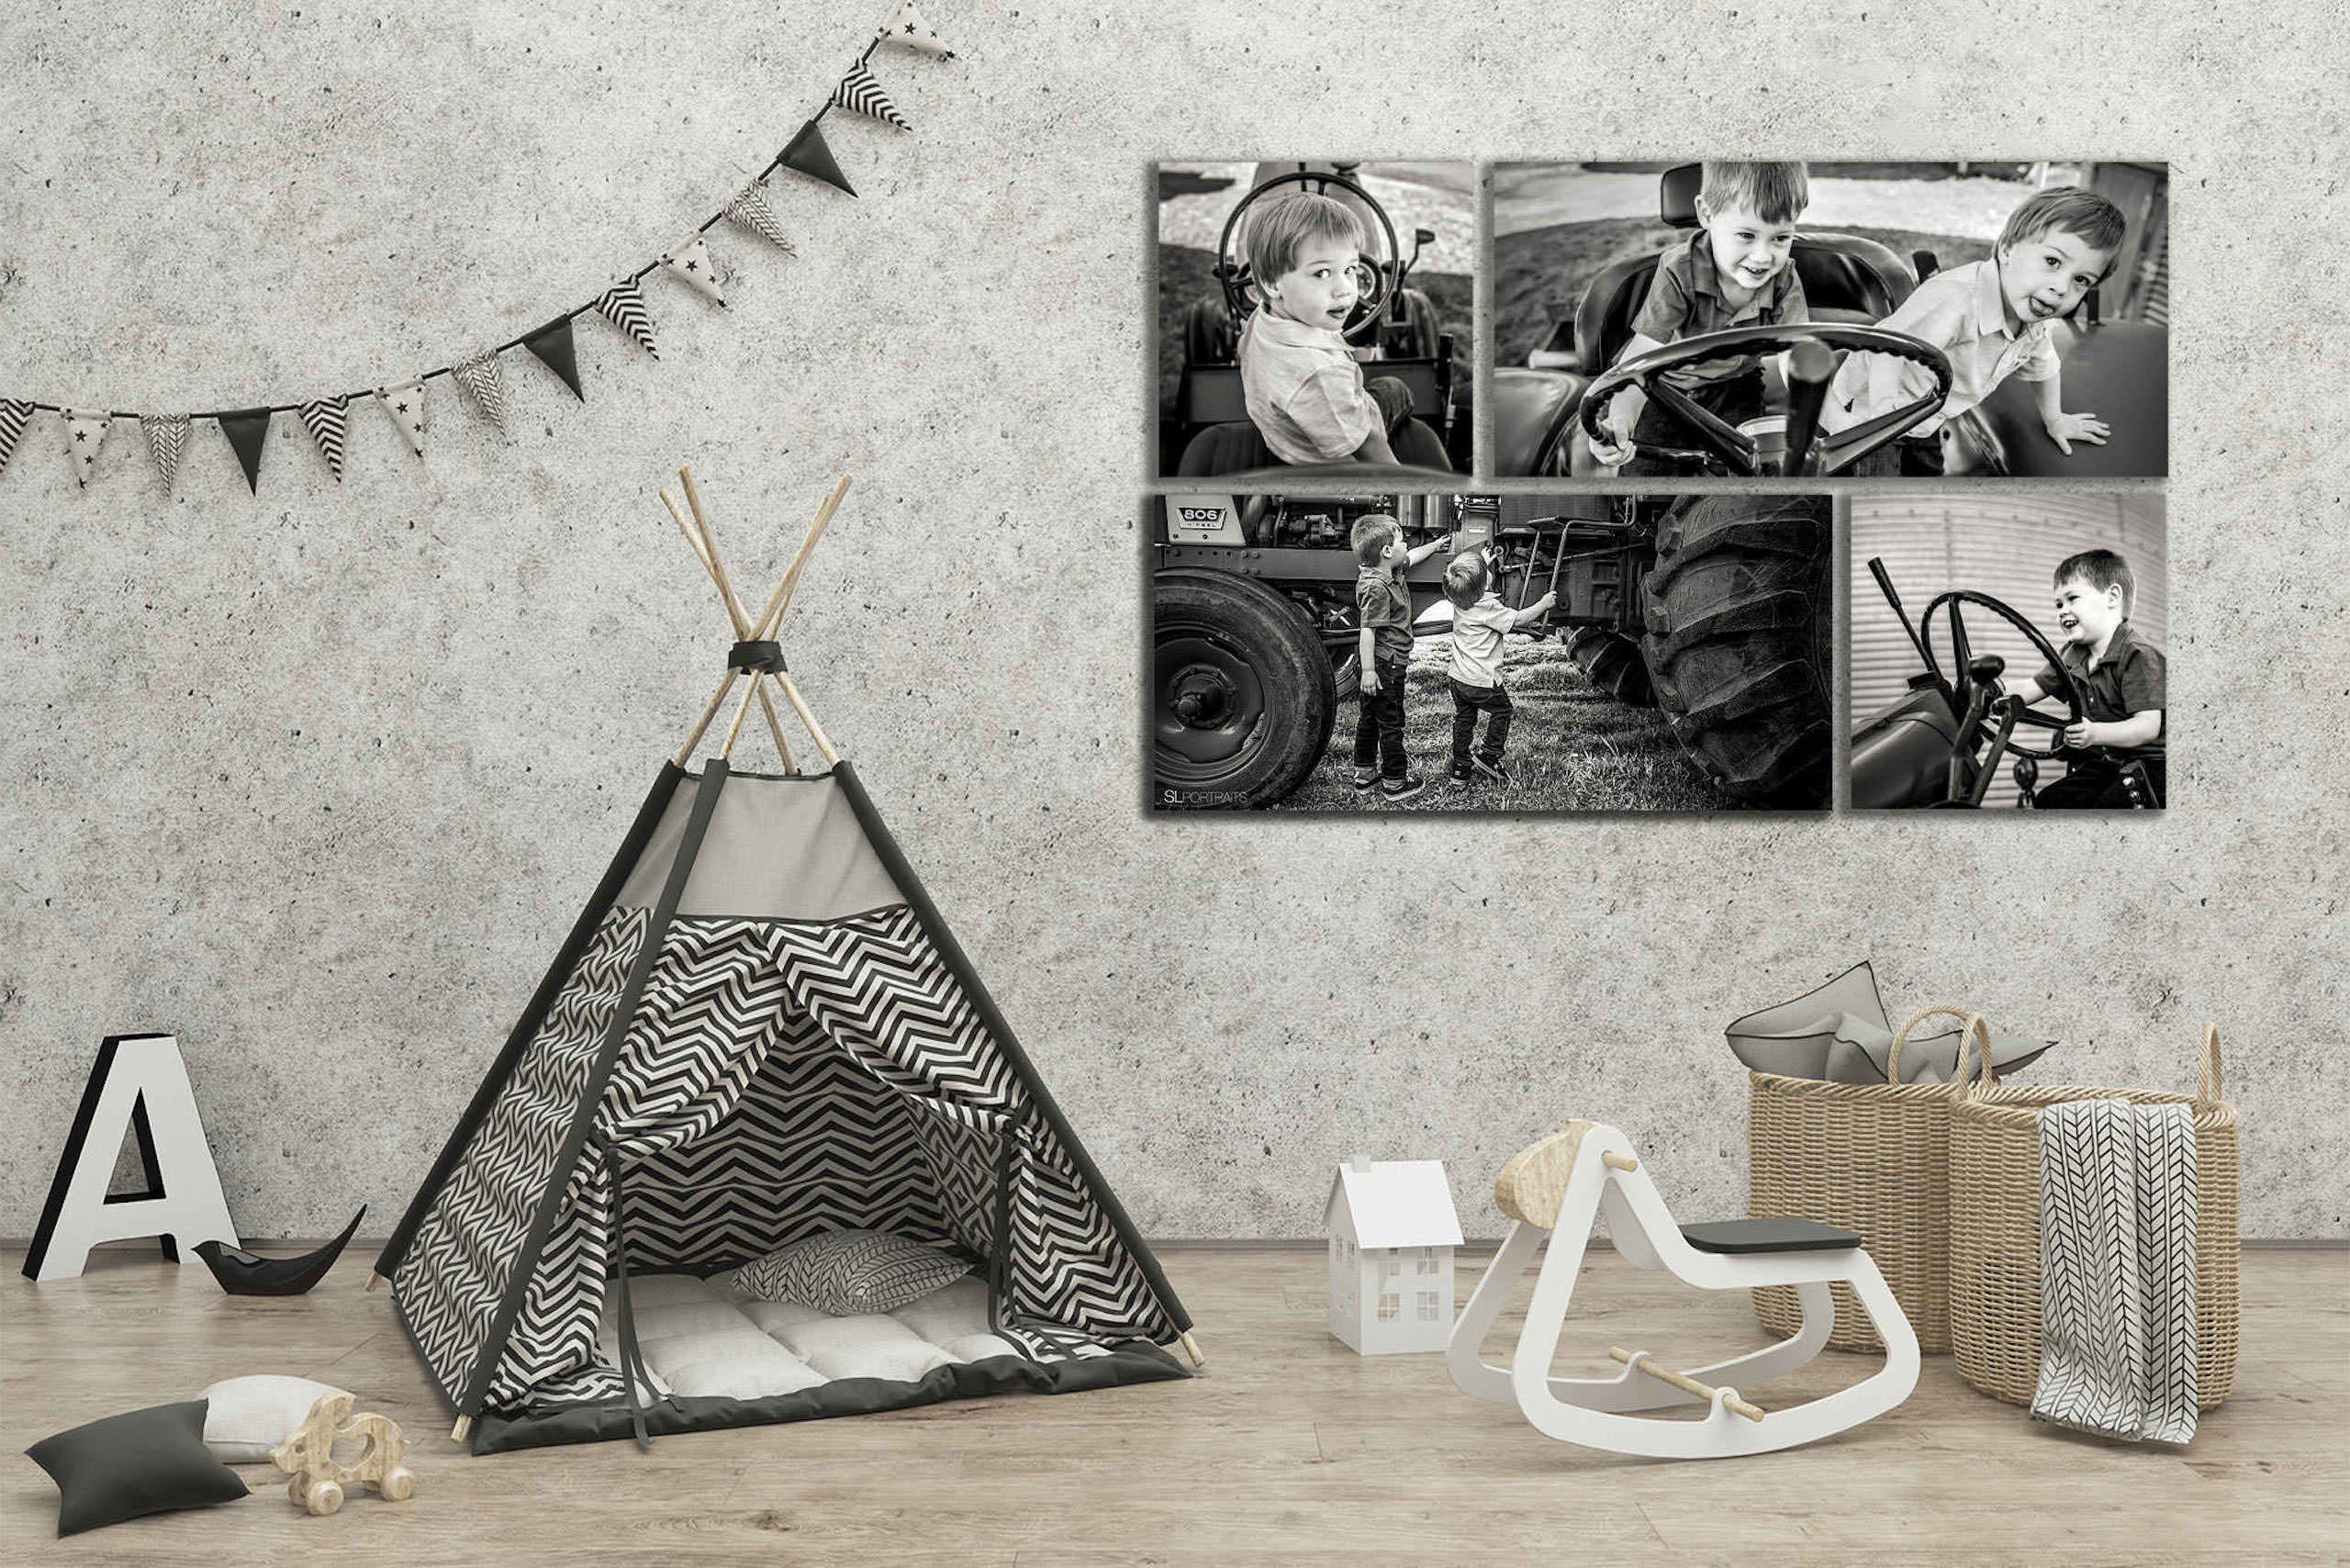 large wall art collection of two brother hung beside a tent by top calgary portrait photographer sean leblanc